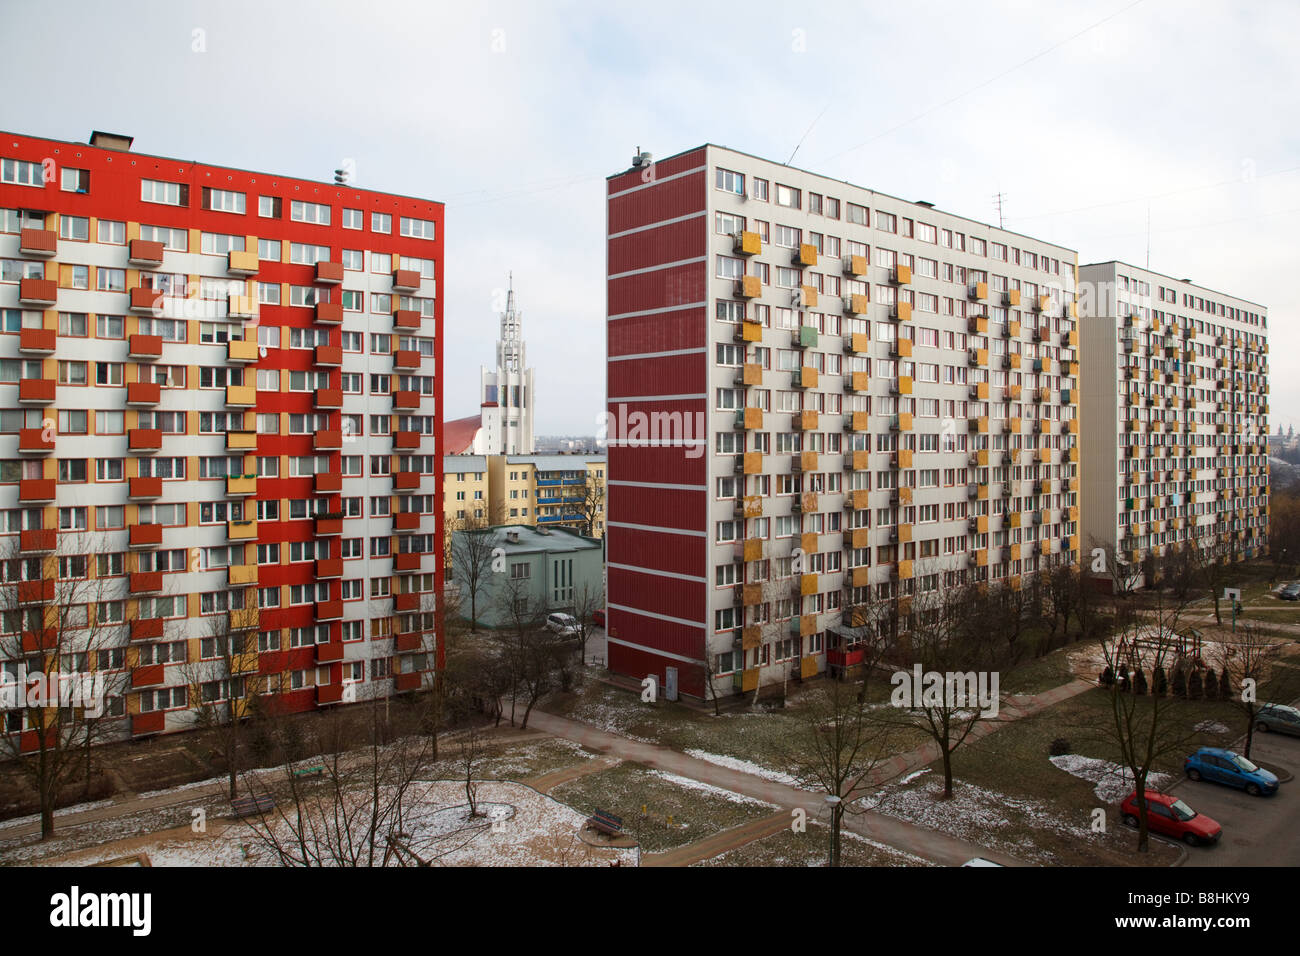 Socialist highrise blocks from the end of 70s and a catholic church in Bialystok in Poland - Stock Image